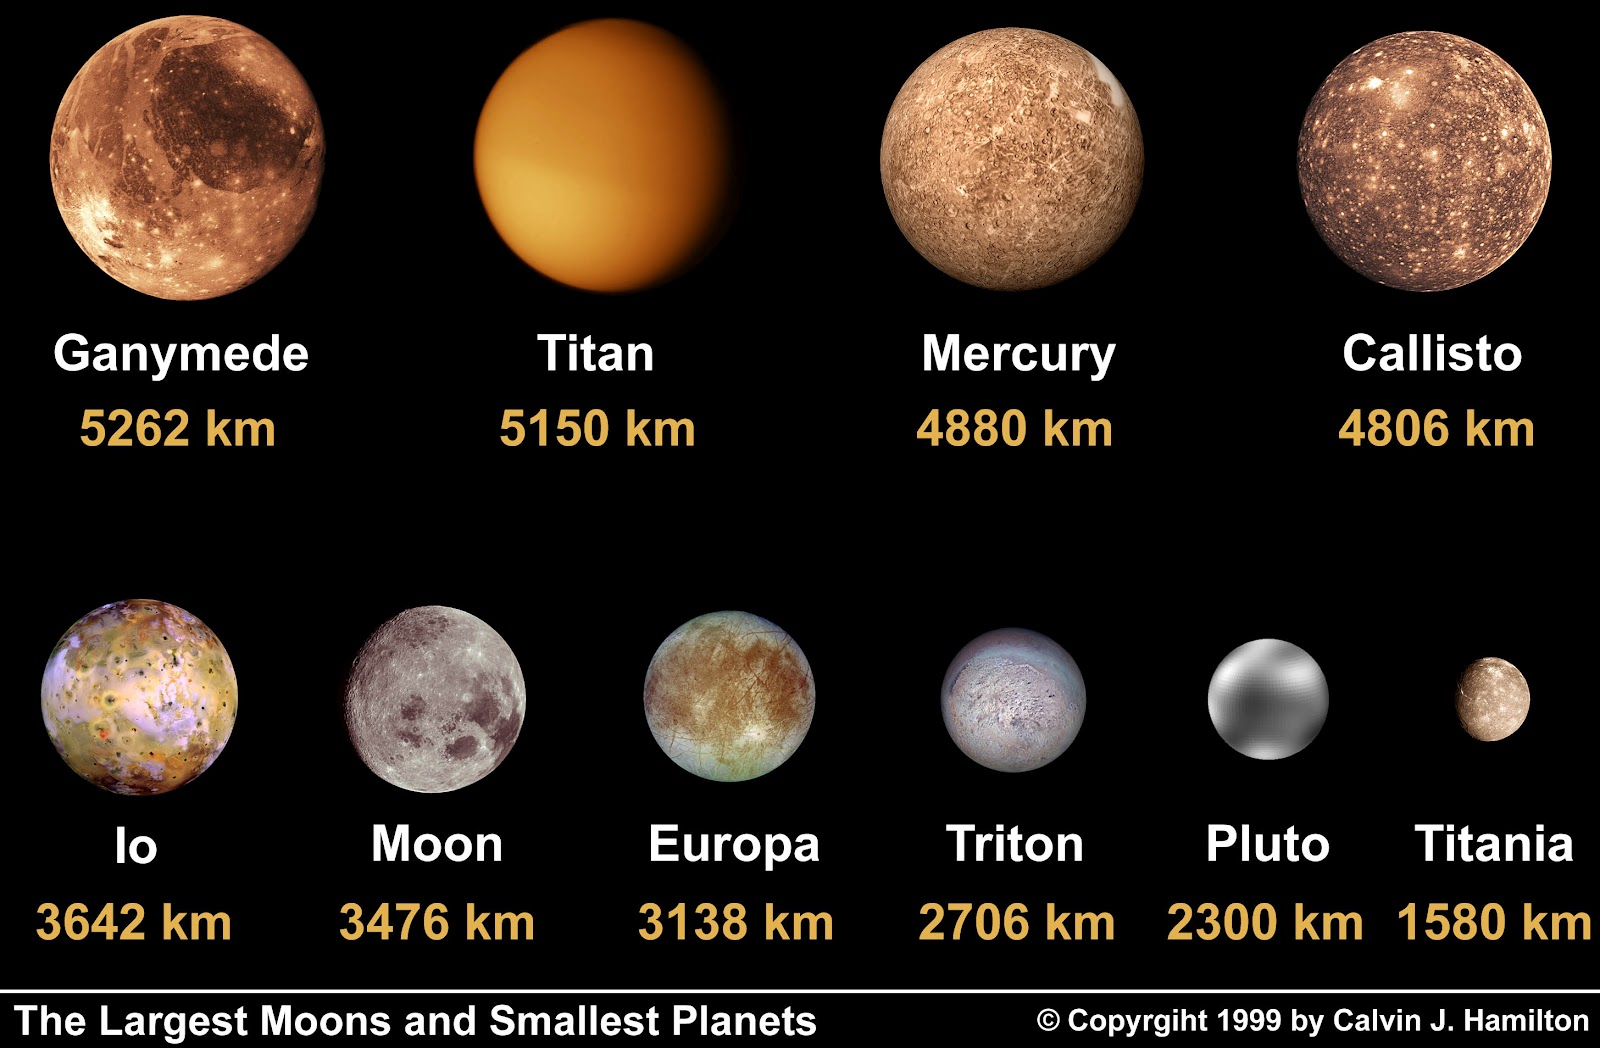 planet mercury number of moons - photo #5